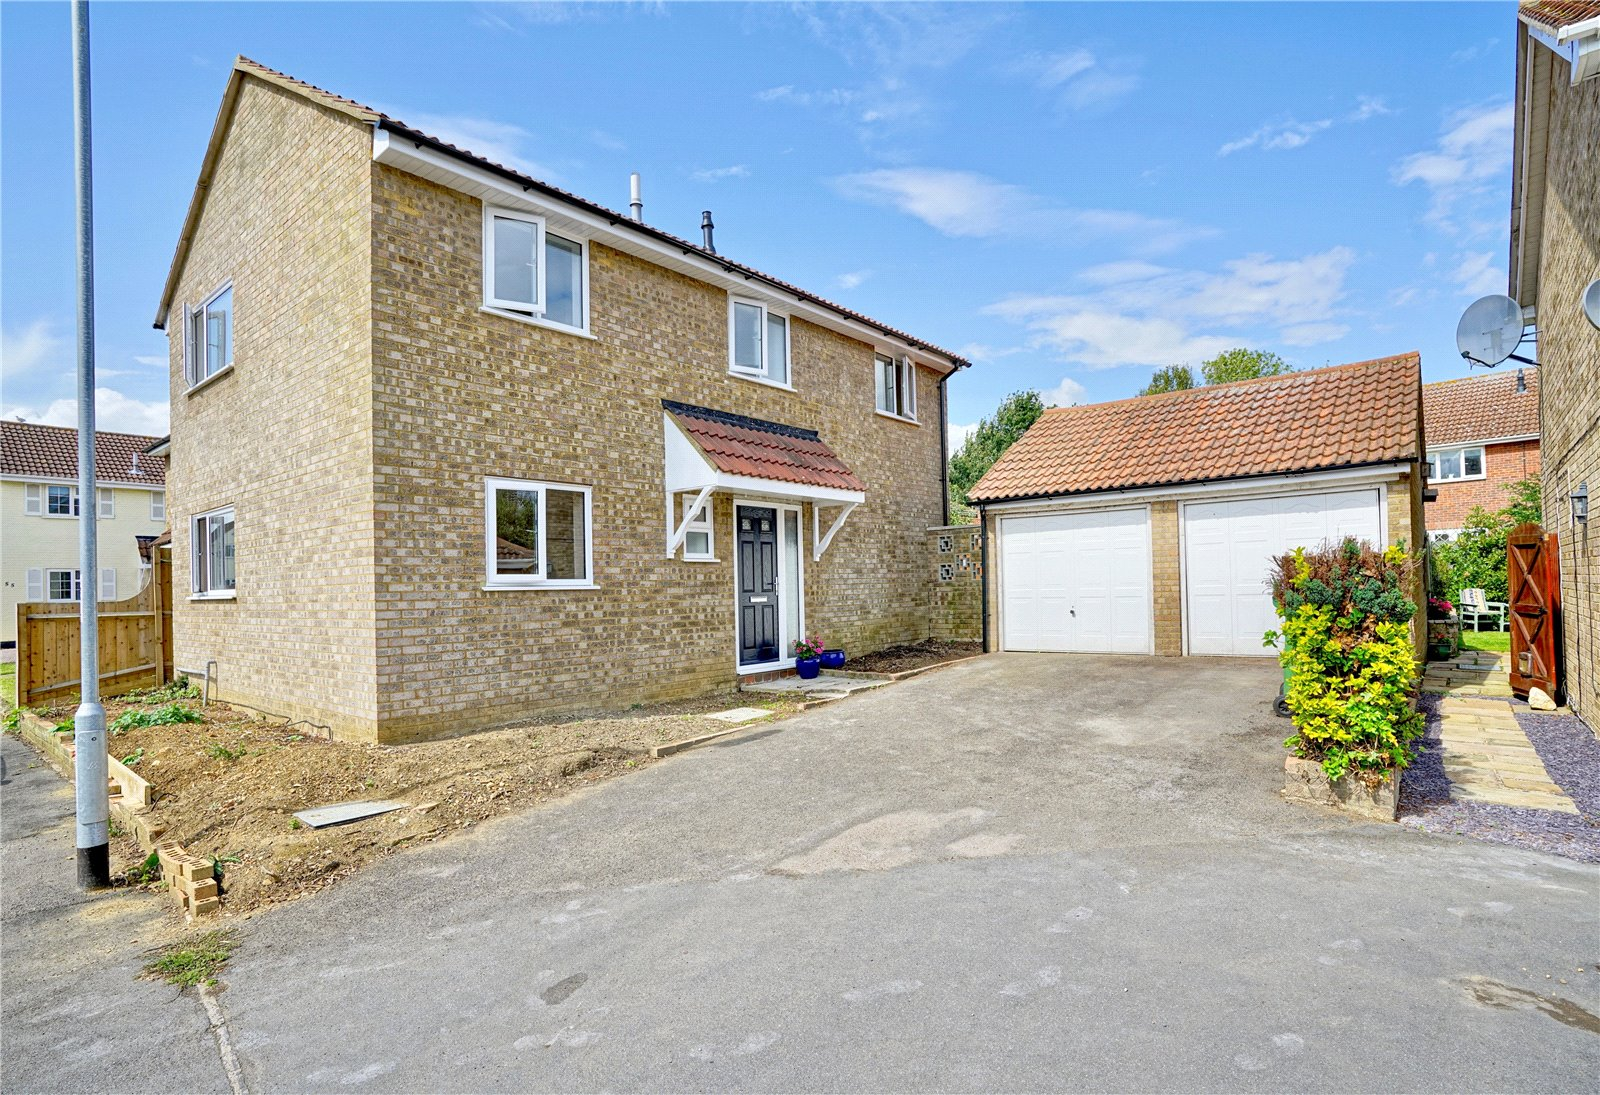 4 bed house for sale in Eaton Socon  - Property Image 9